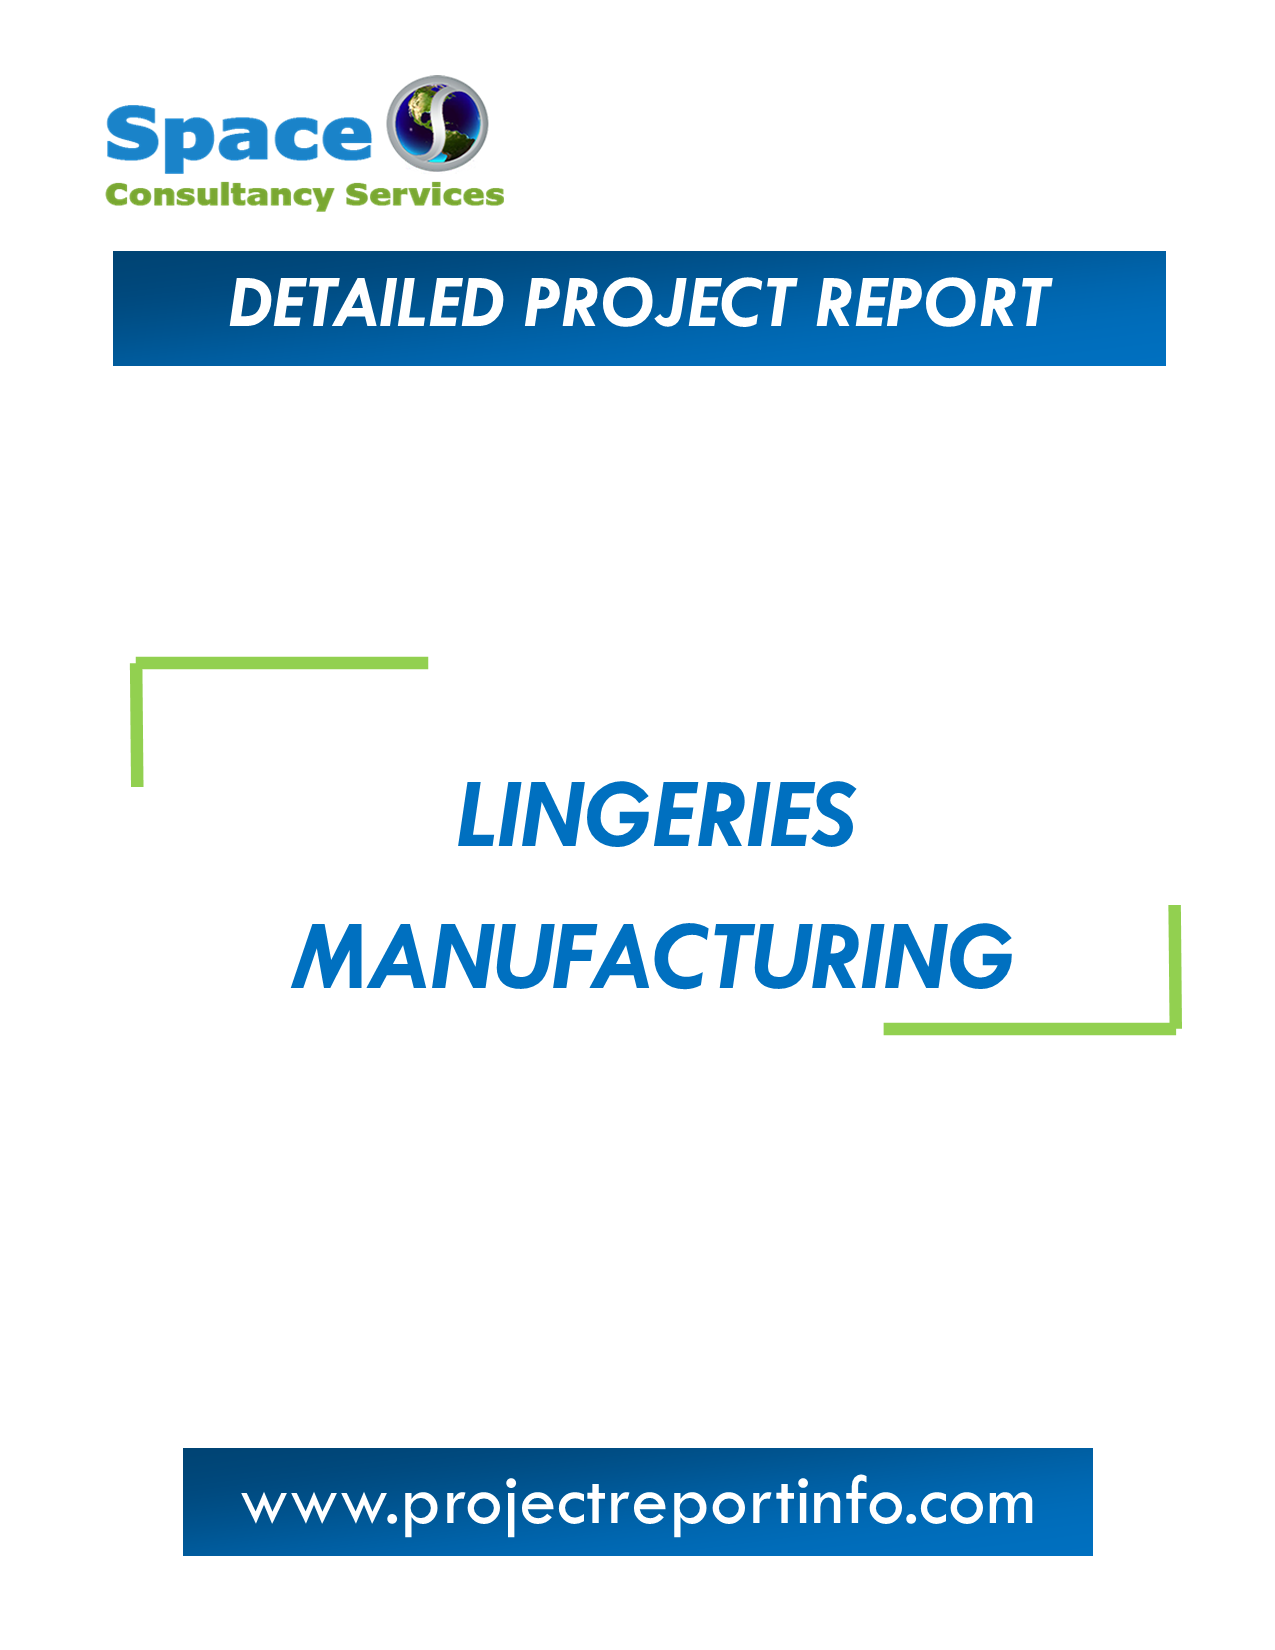 Project Report on Lingeries Manufacturing